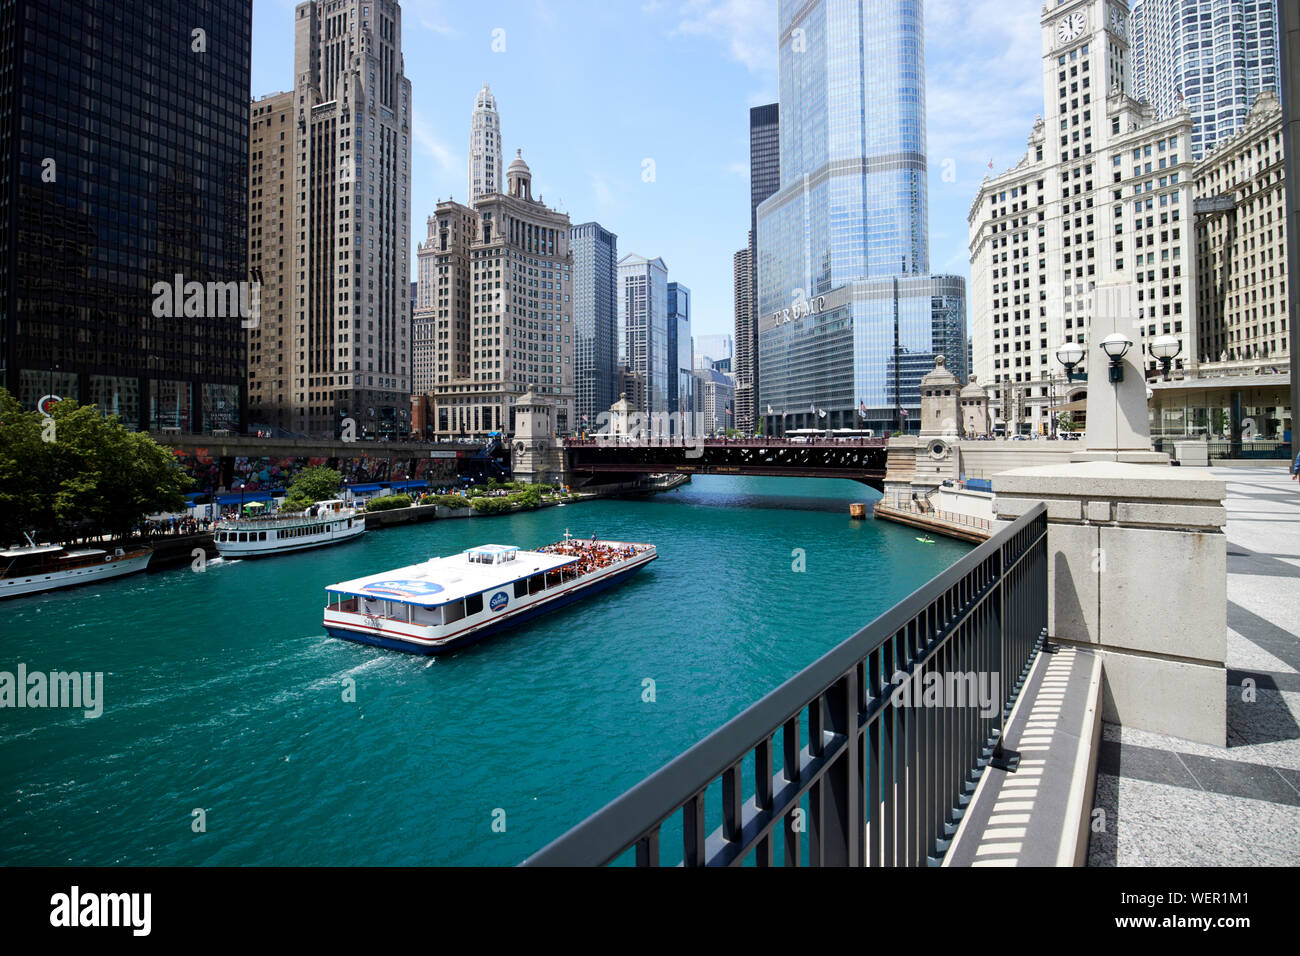 Chicago Waterfront Park Stock Photos & Chicago Waterfront Park ...